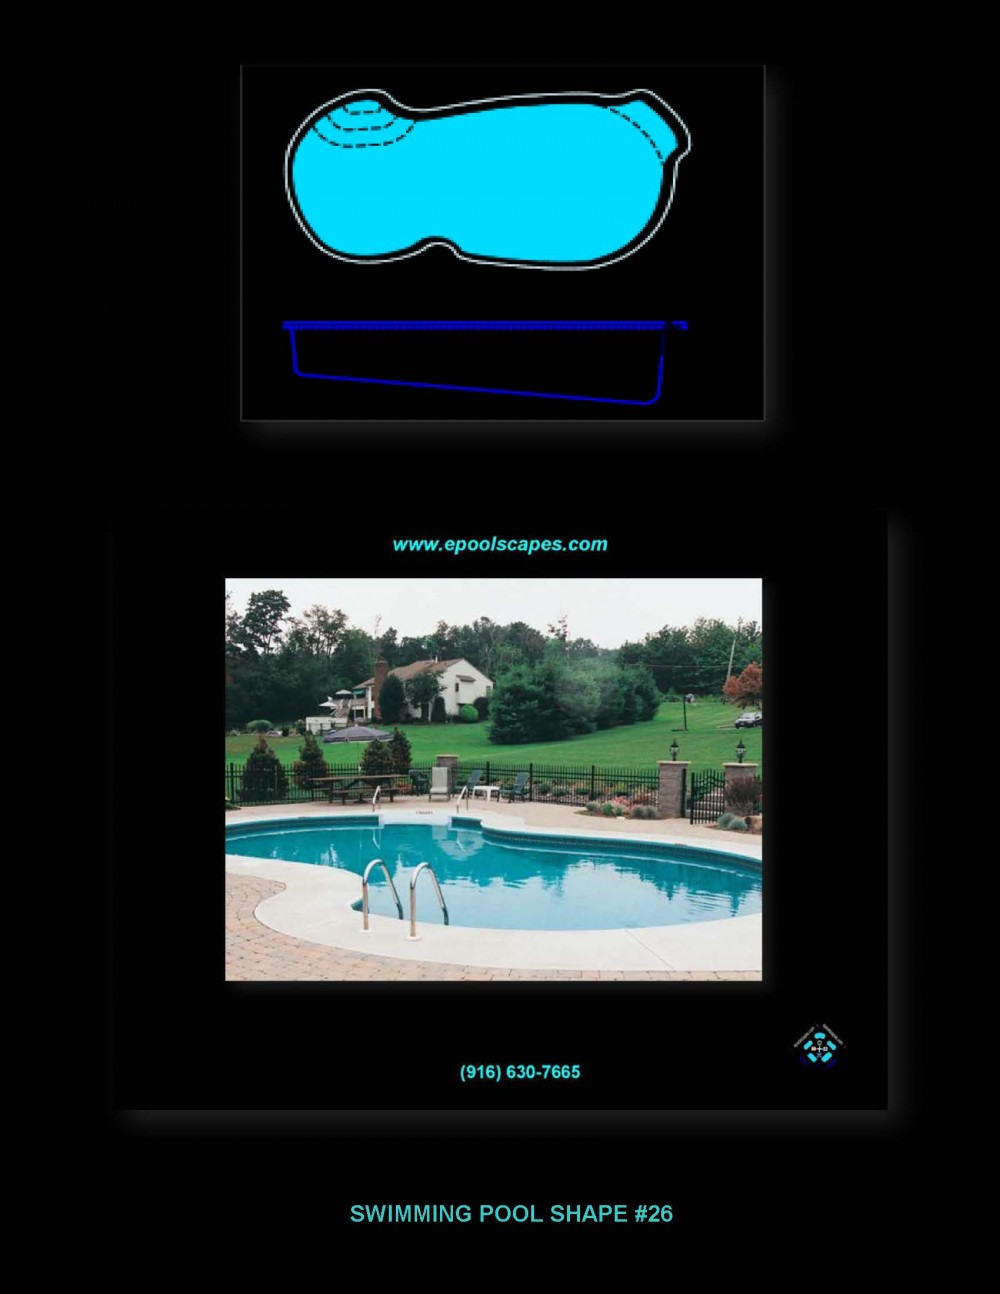 Pool Shape #26